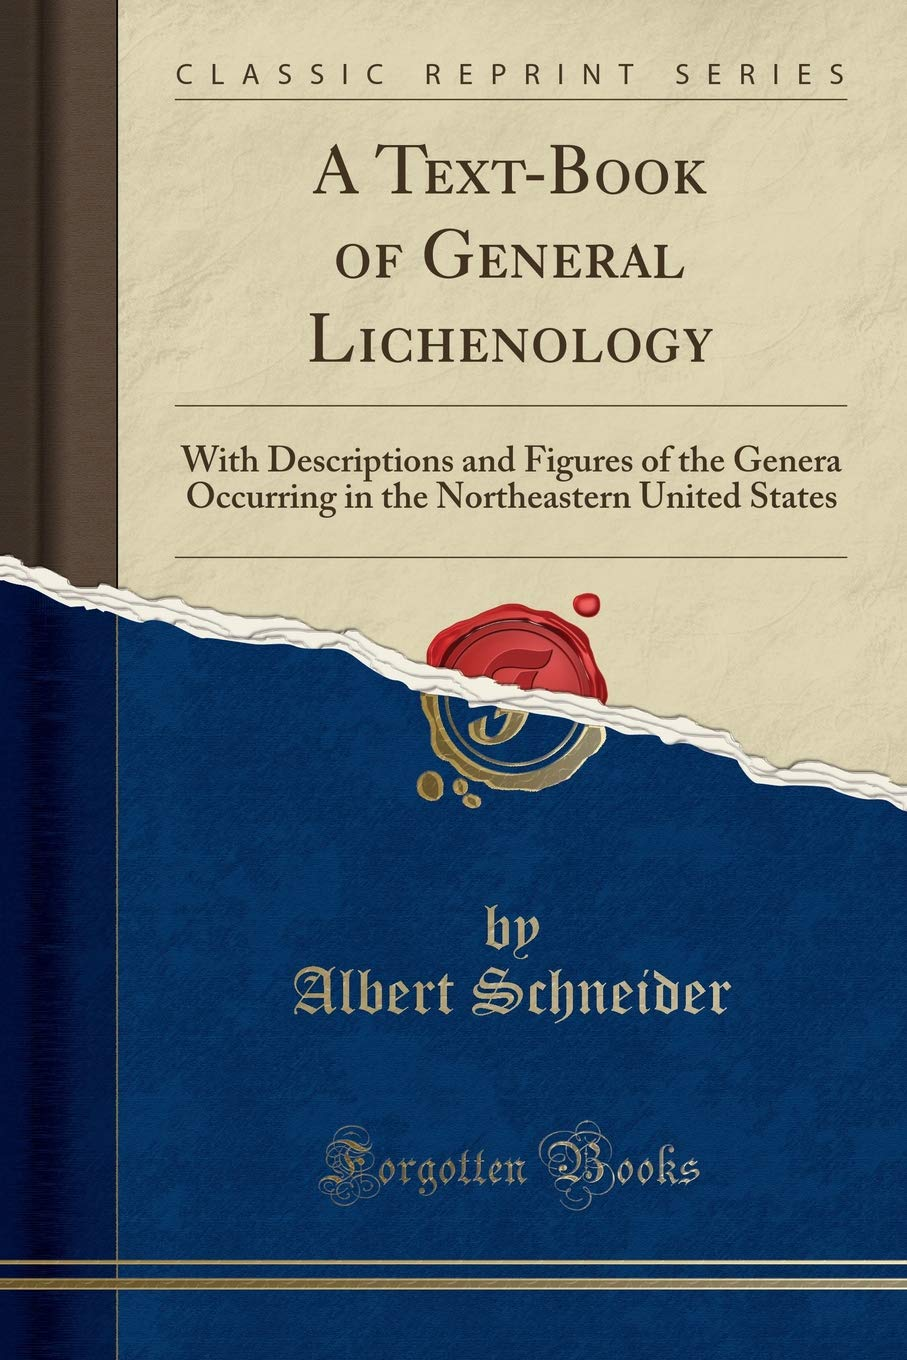 A Text-Book of General Lichenology: With Descriptions and Figures of the Genera Occurring in the Northeastern United States (Classic Reprint) PDF